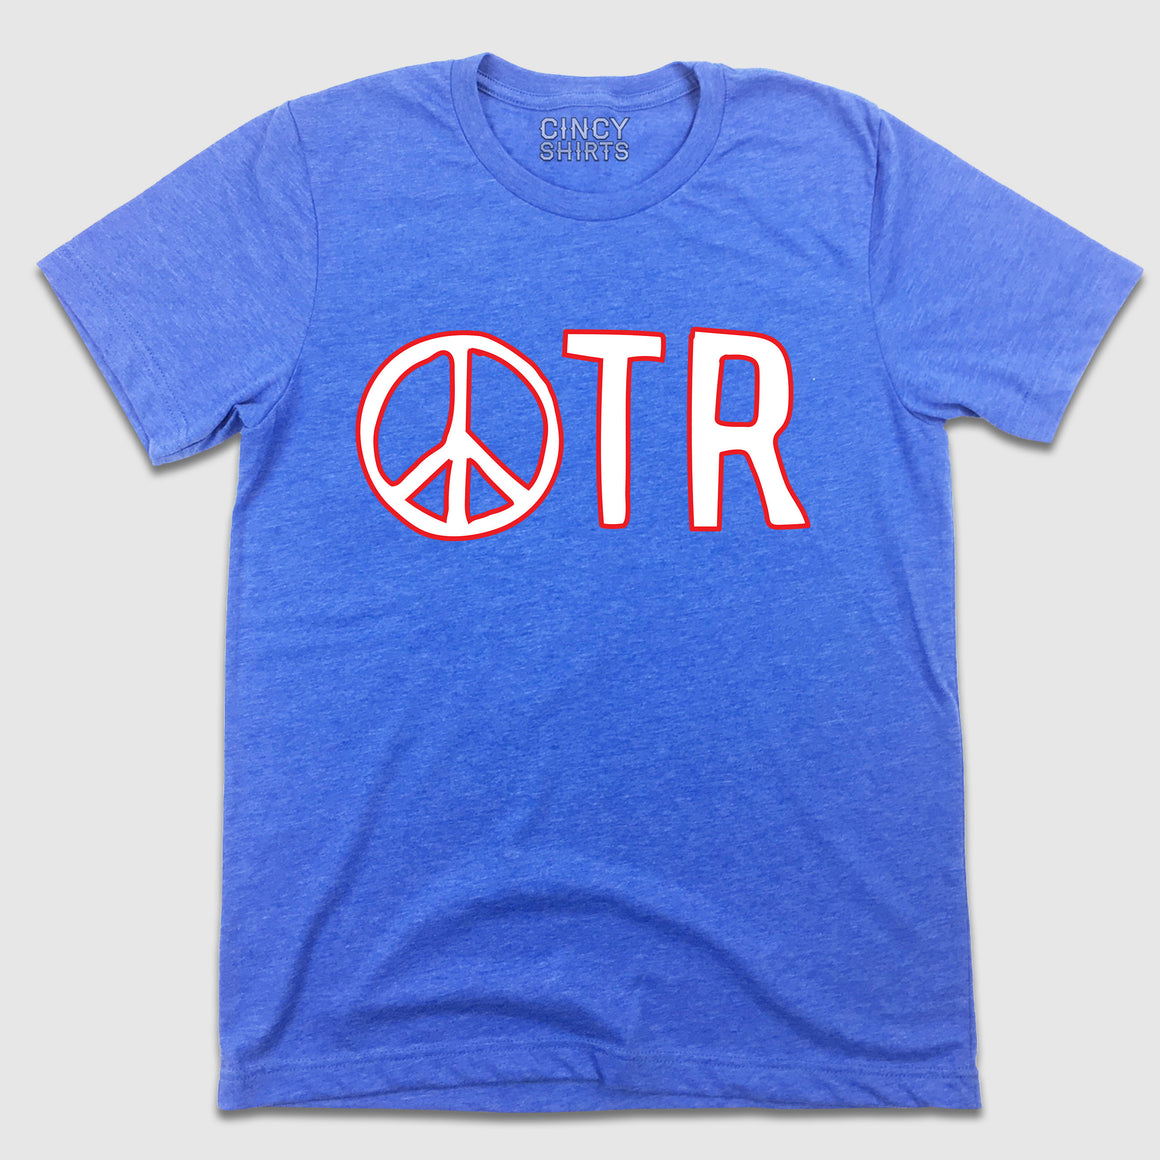 Peace In OTR - Cincy Shirts